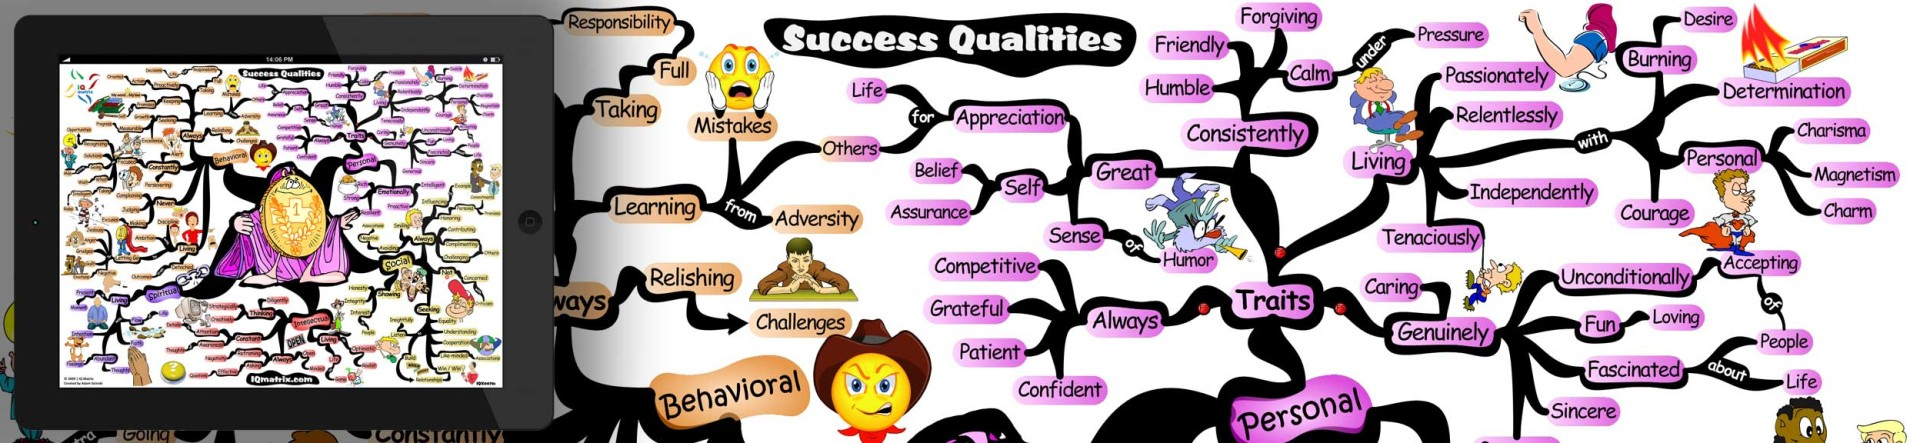 essay on qualities are required for success Marketers want us to believe that living a selfish life, involving nothing but the pursuit of money and fame will bring success and happiness sadly, this is not true.